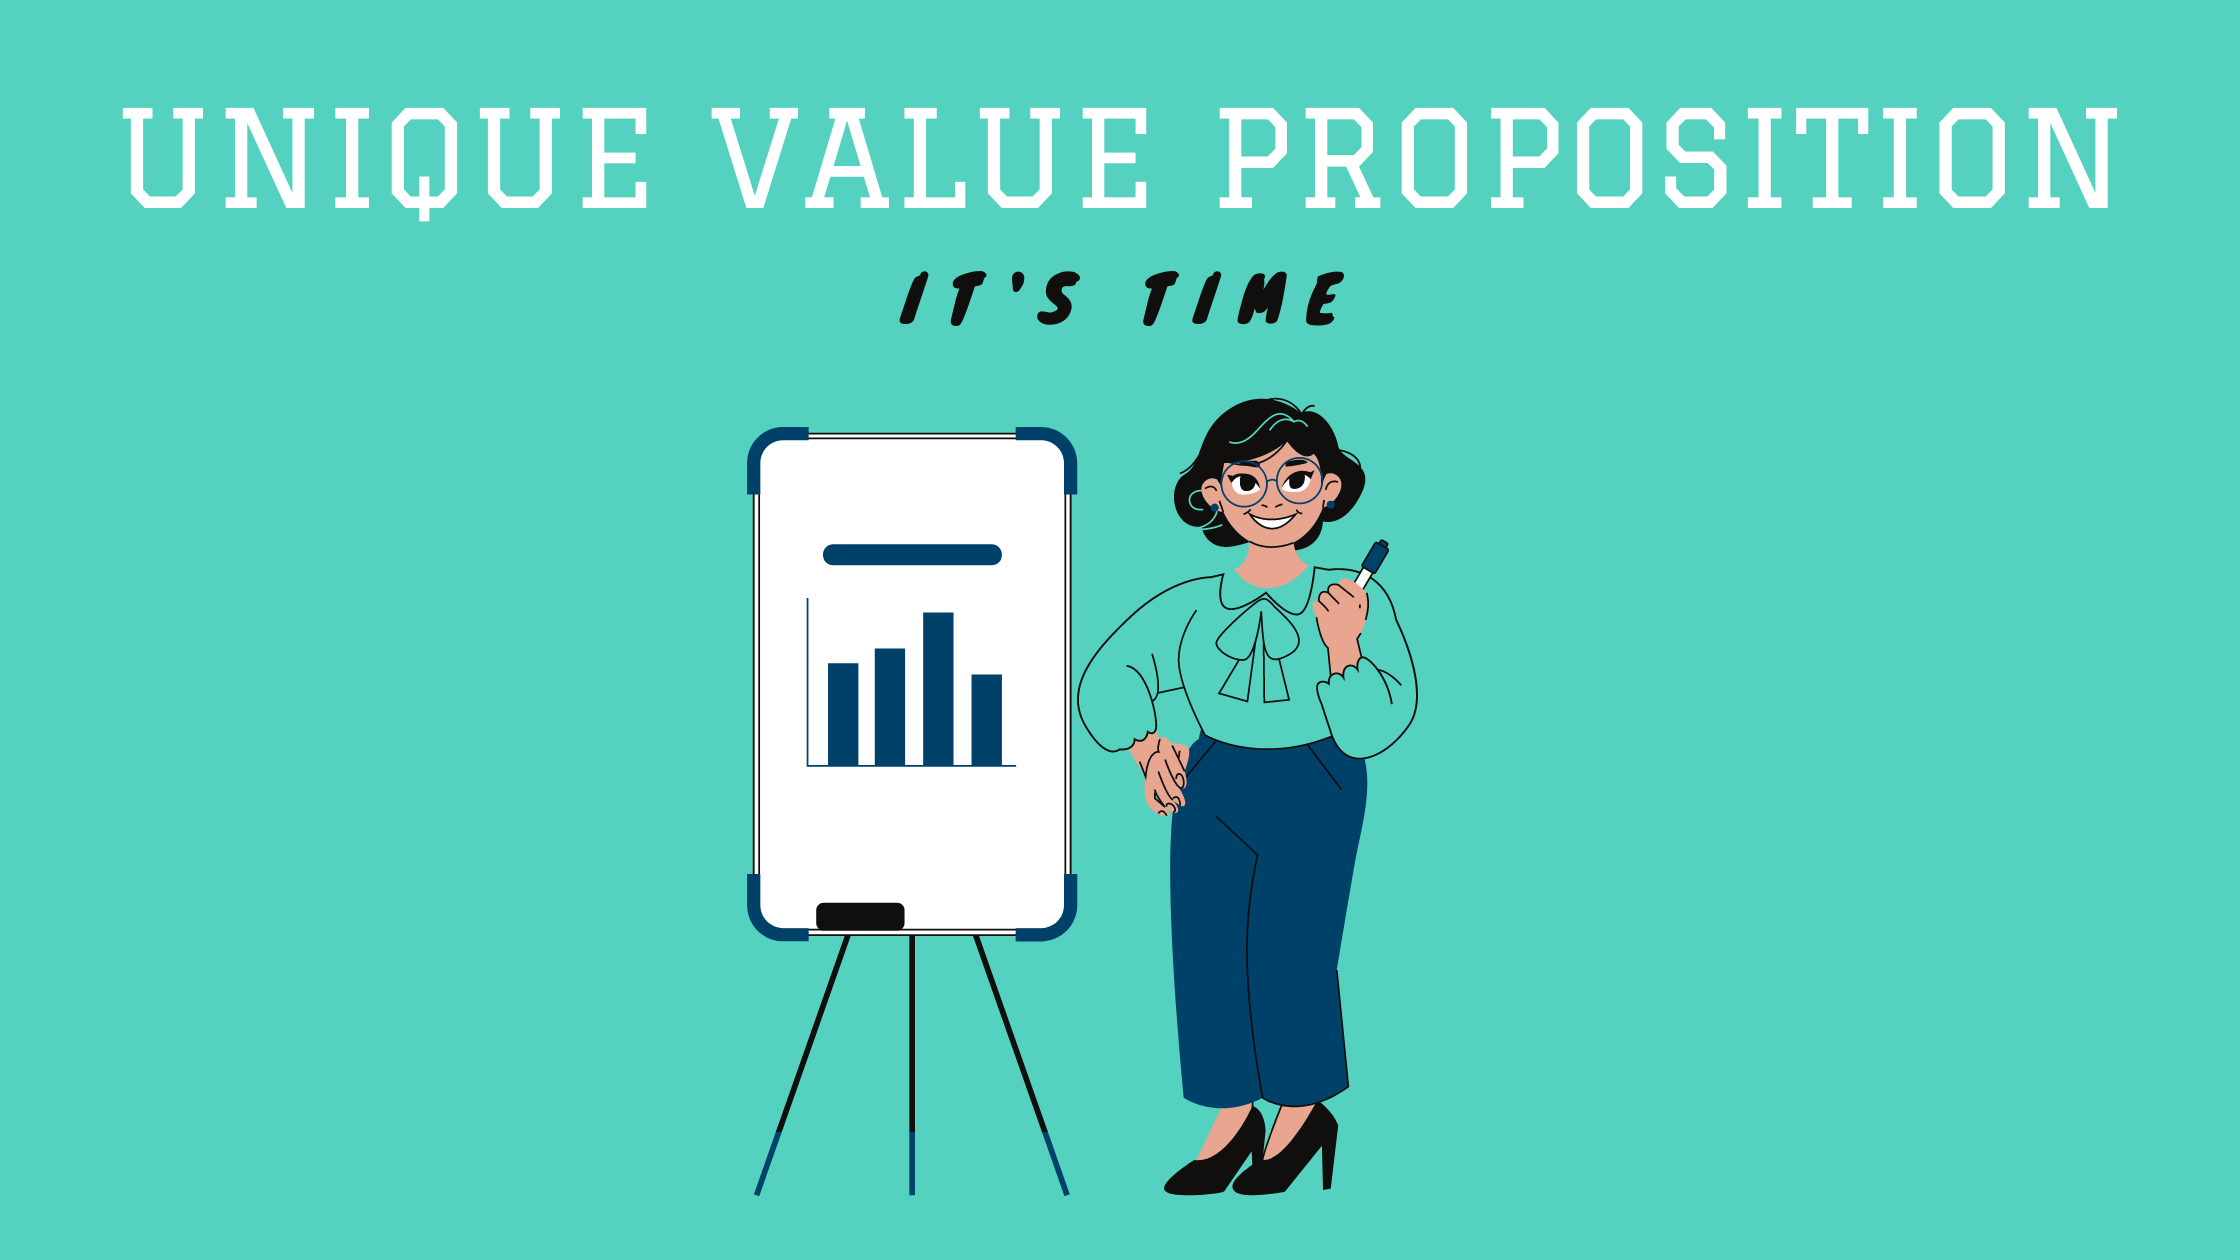 Product value proposition is important to help the product get sold